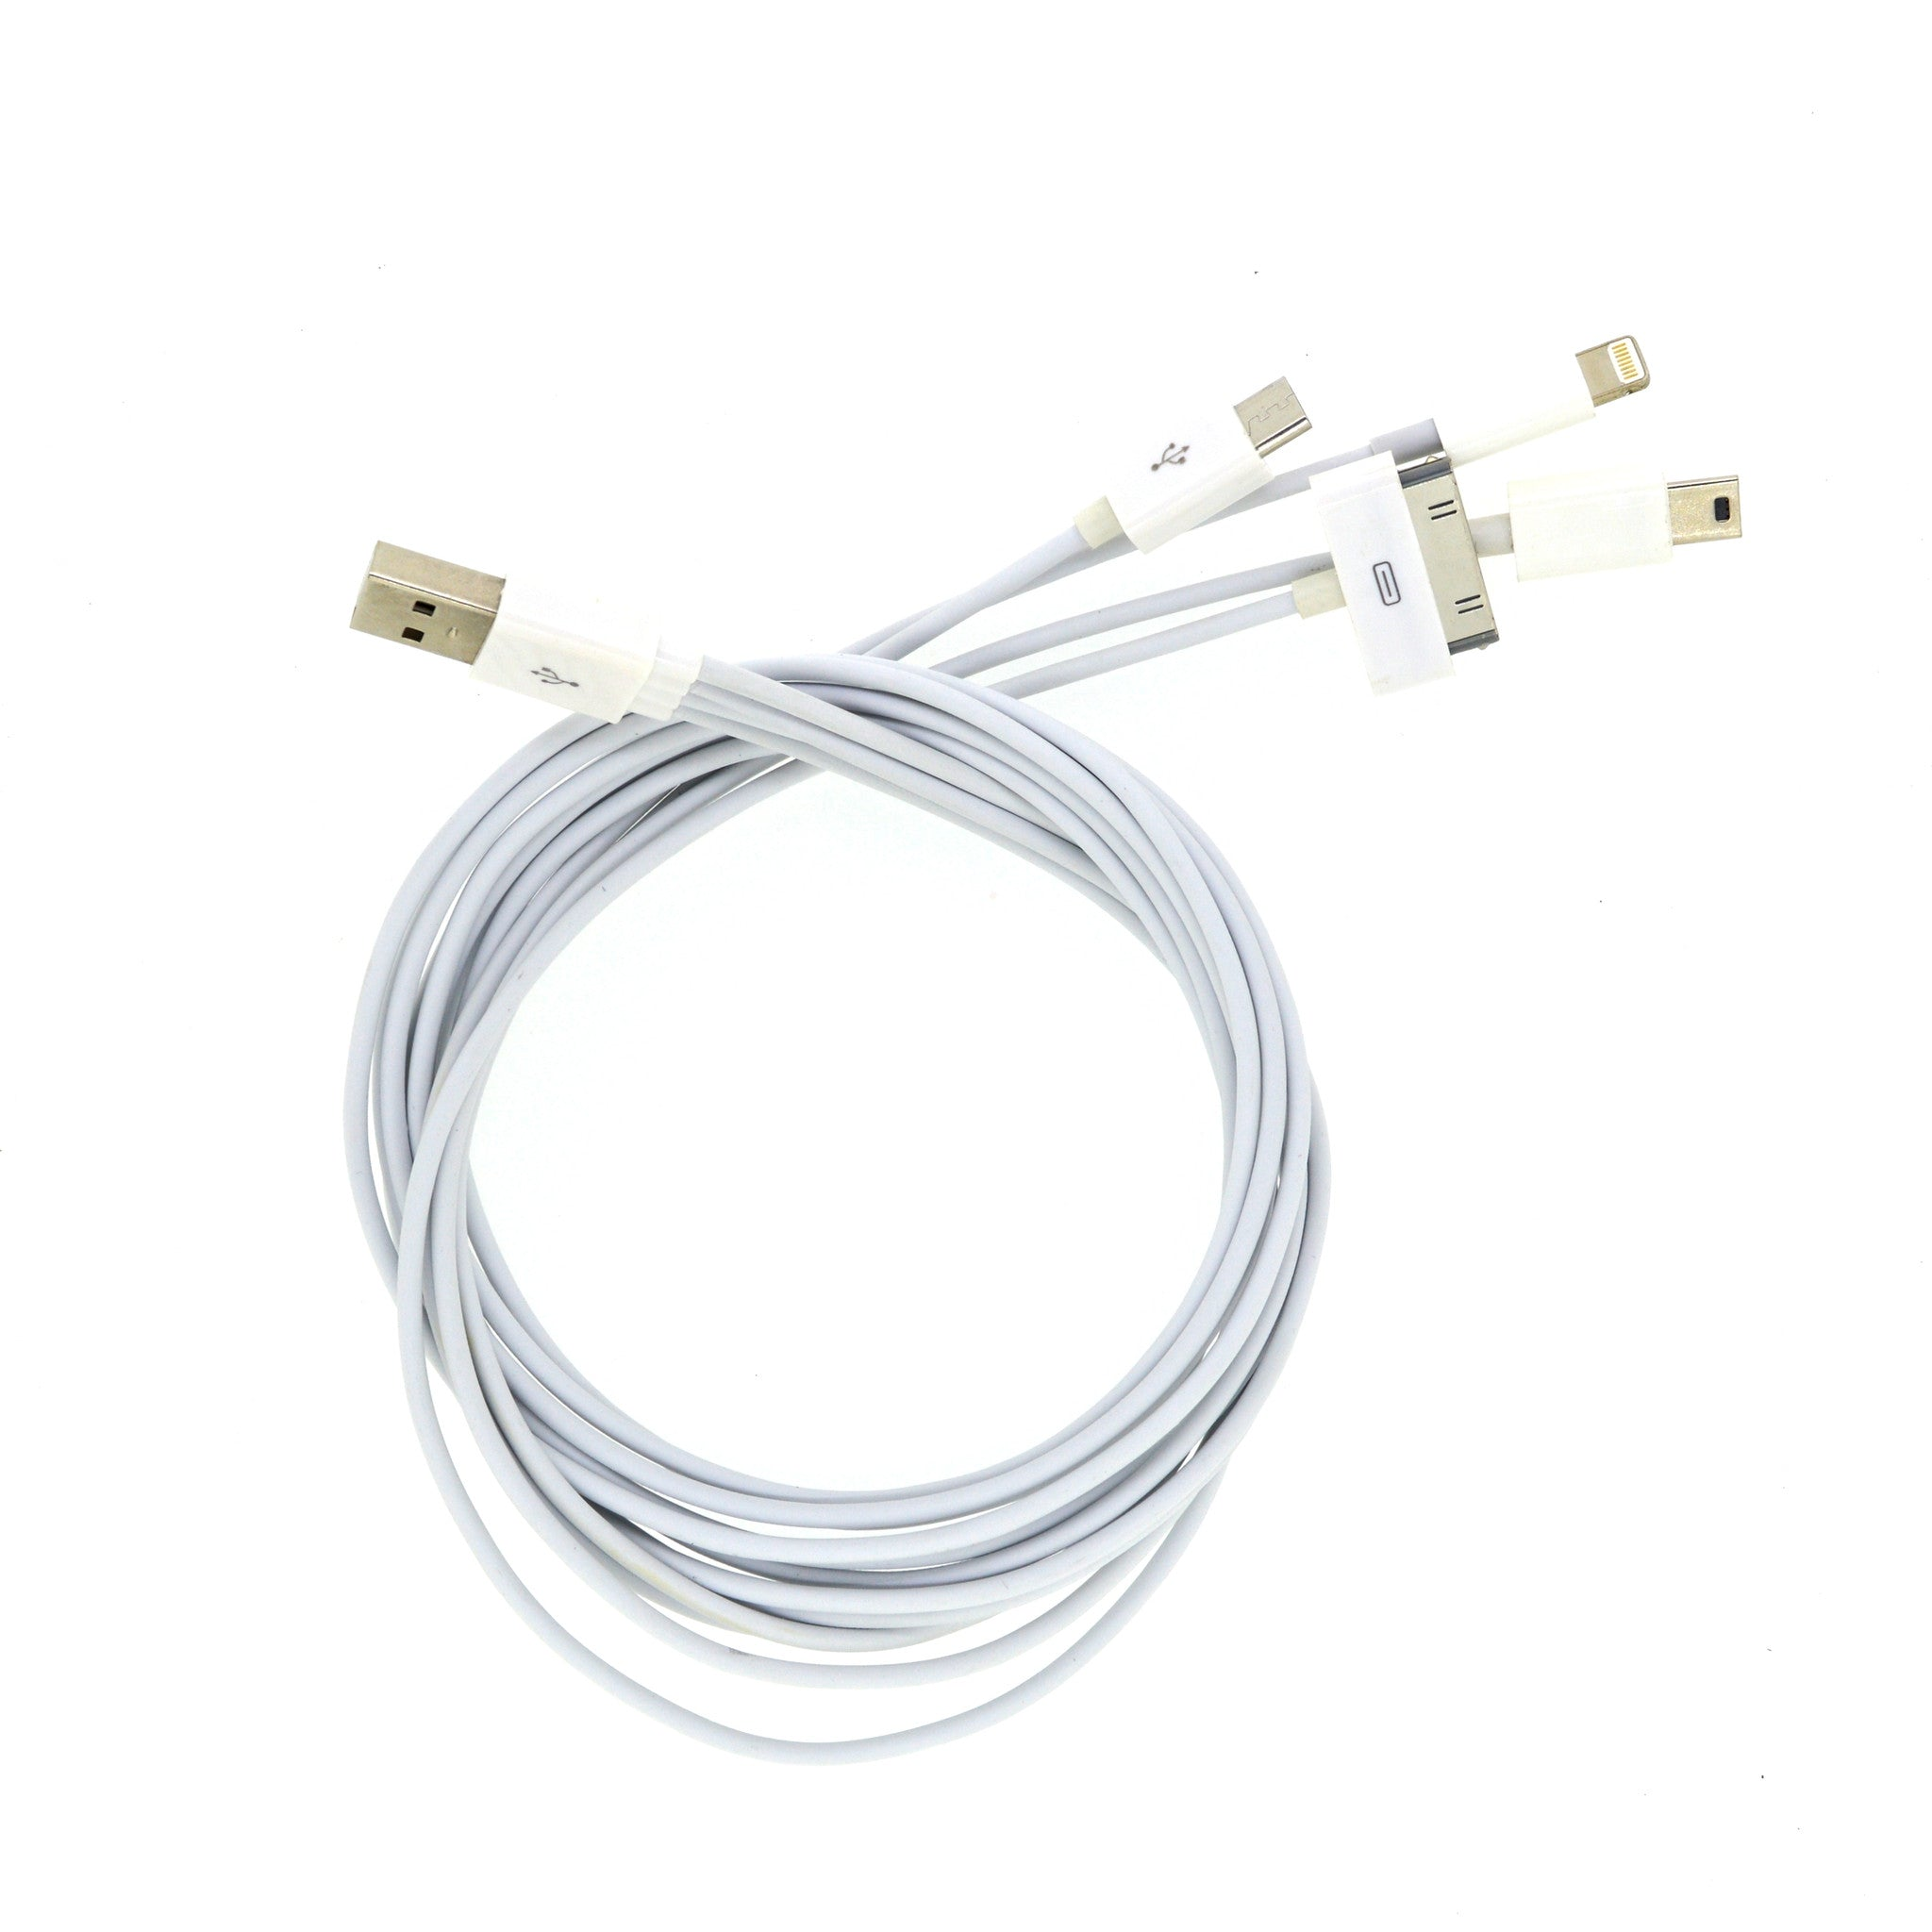 4 in 1 USB Data Cable for Apple & Android - One Meter Long